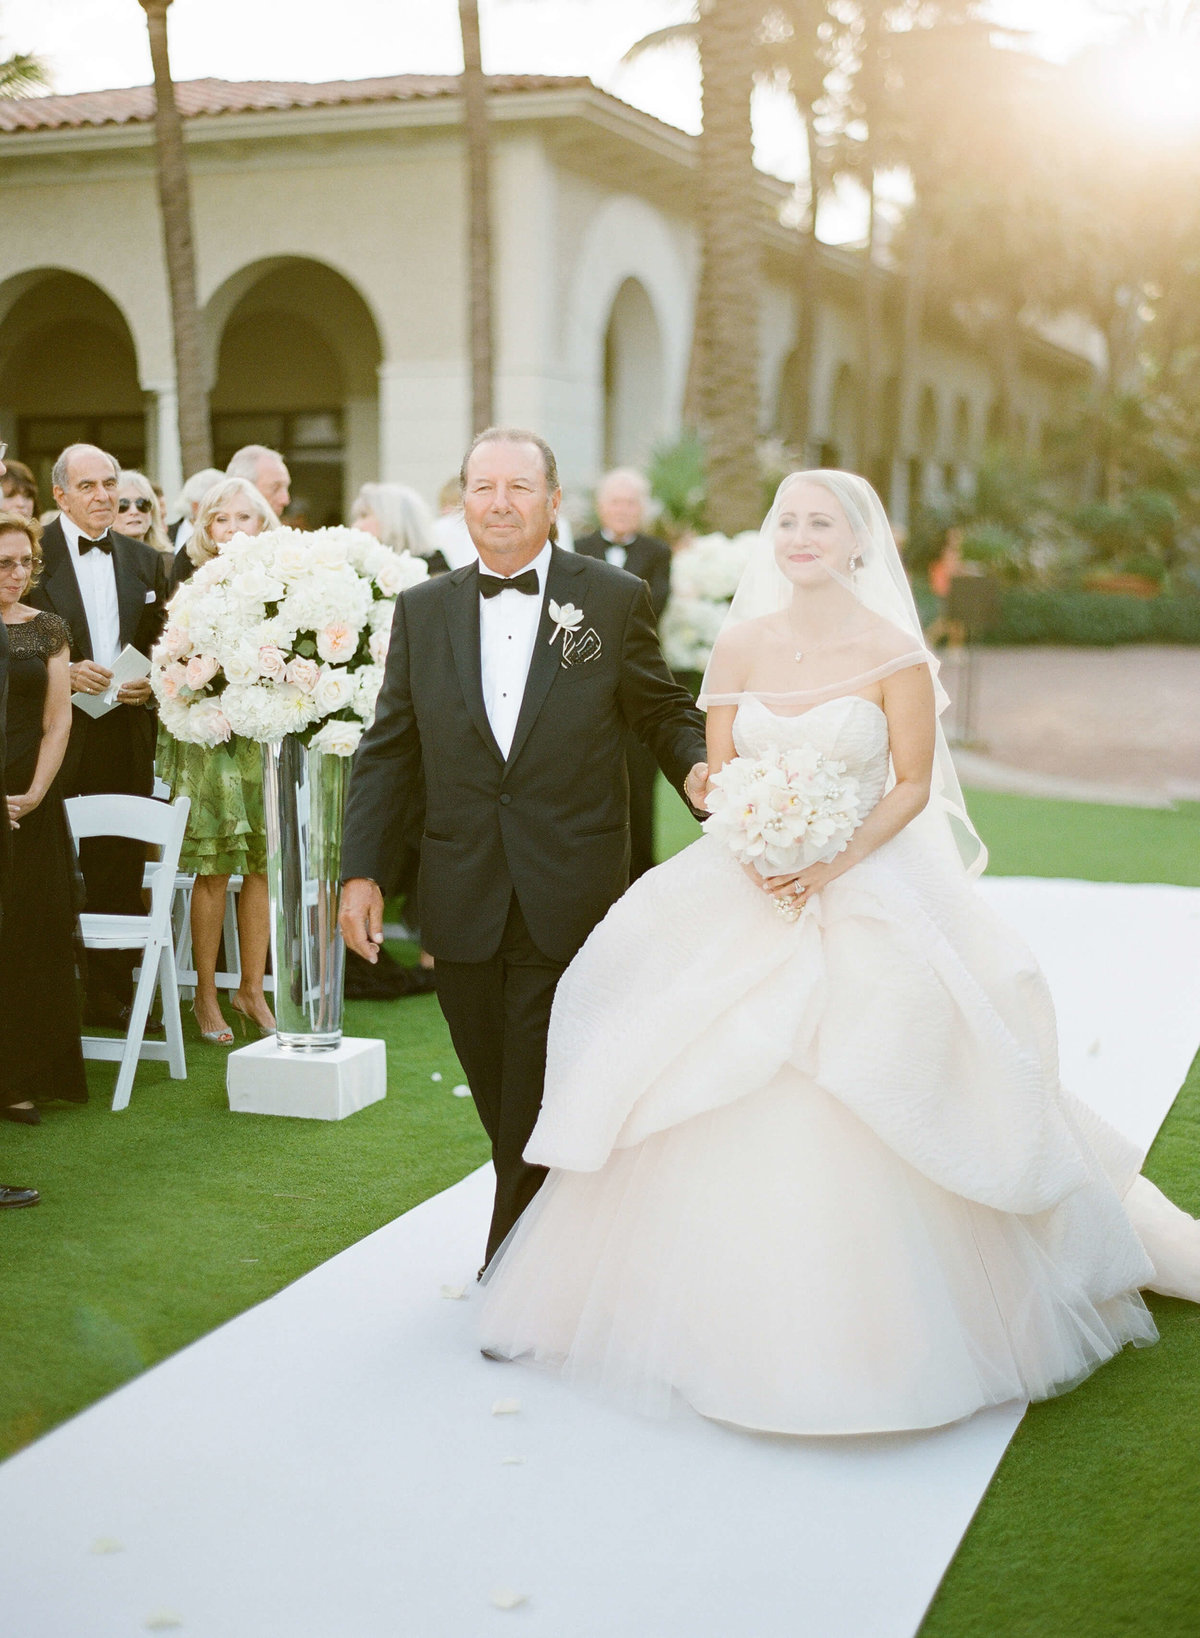 27-KTMerry-weddings-Palm-Beach-bridal-processional